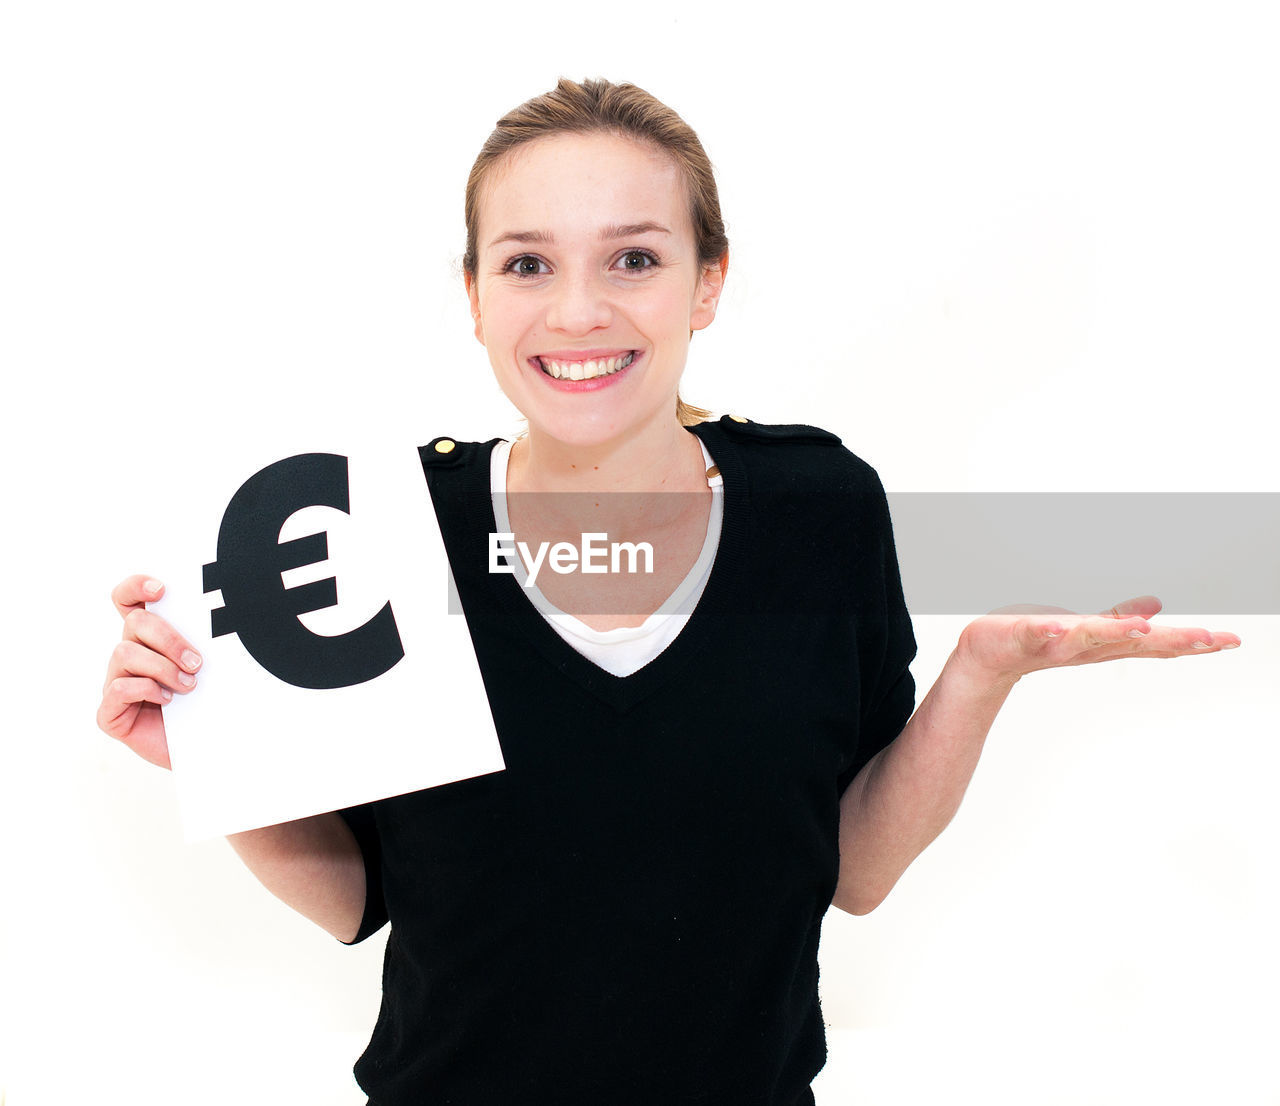 Portrait of smiling woman with euro symbol on placard against white background